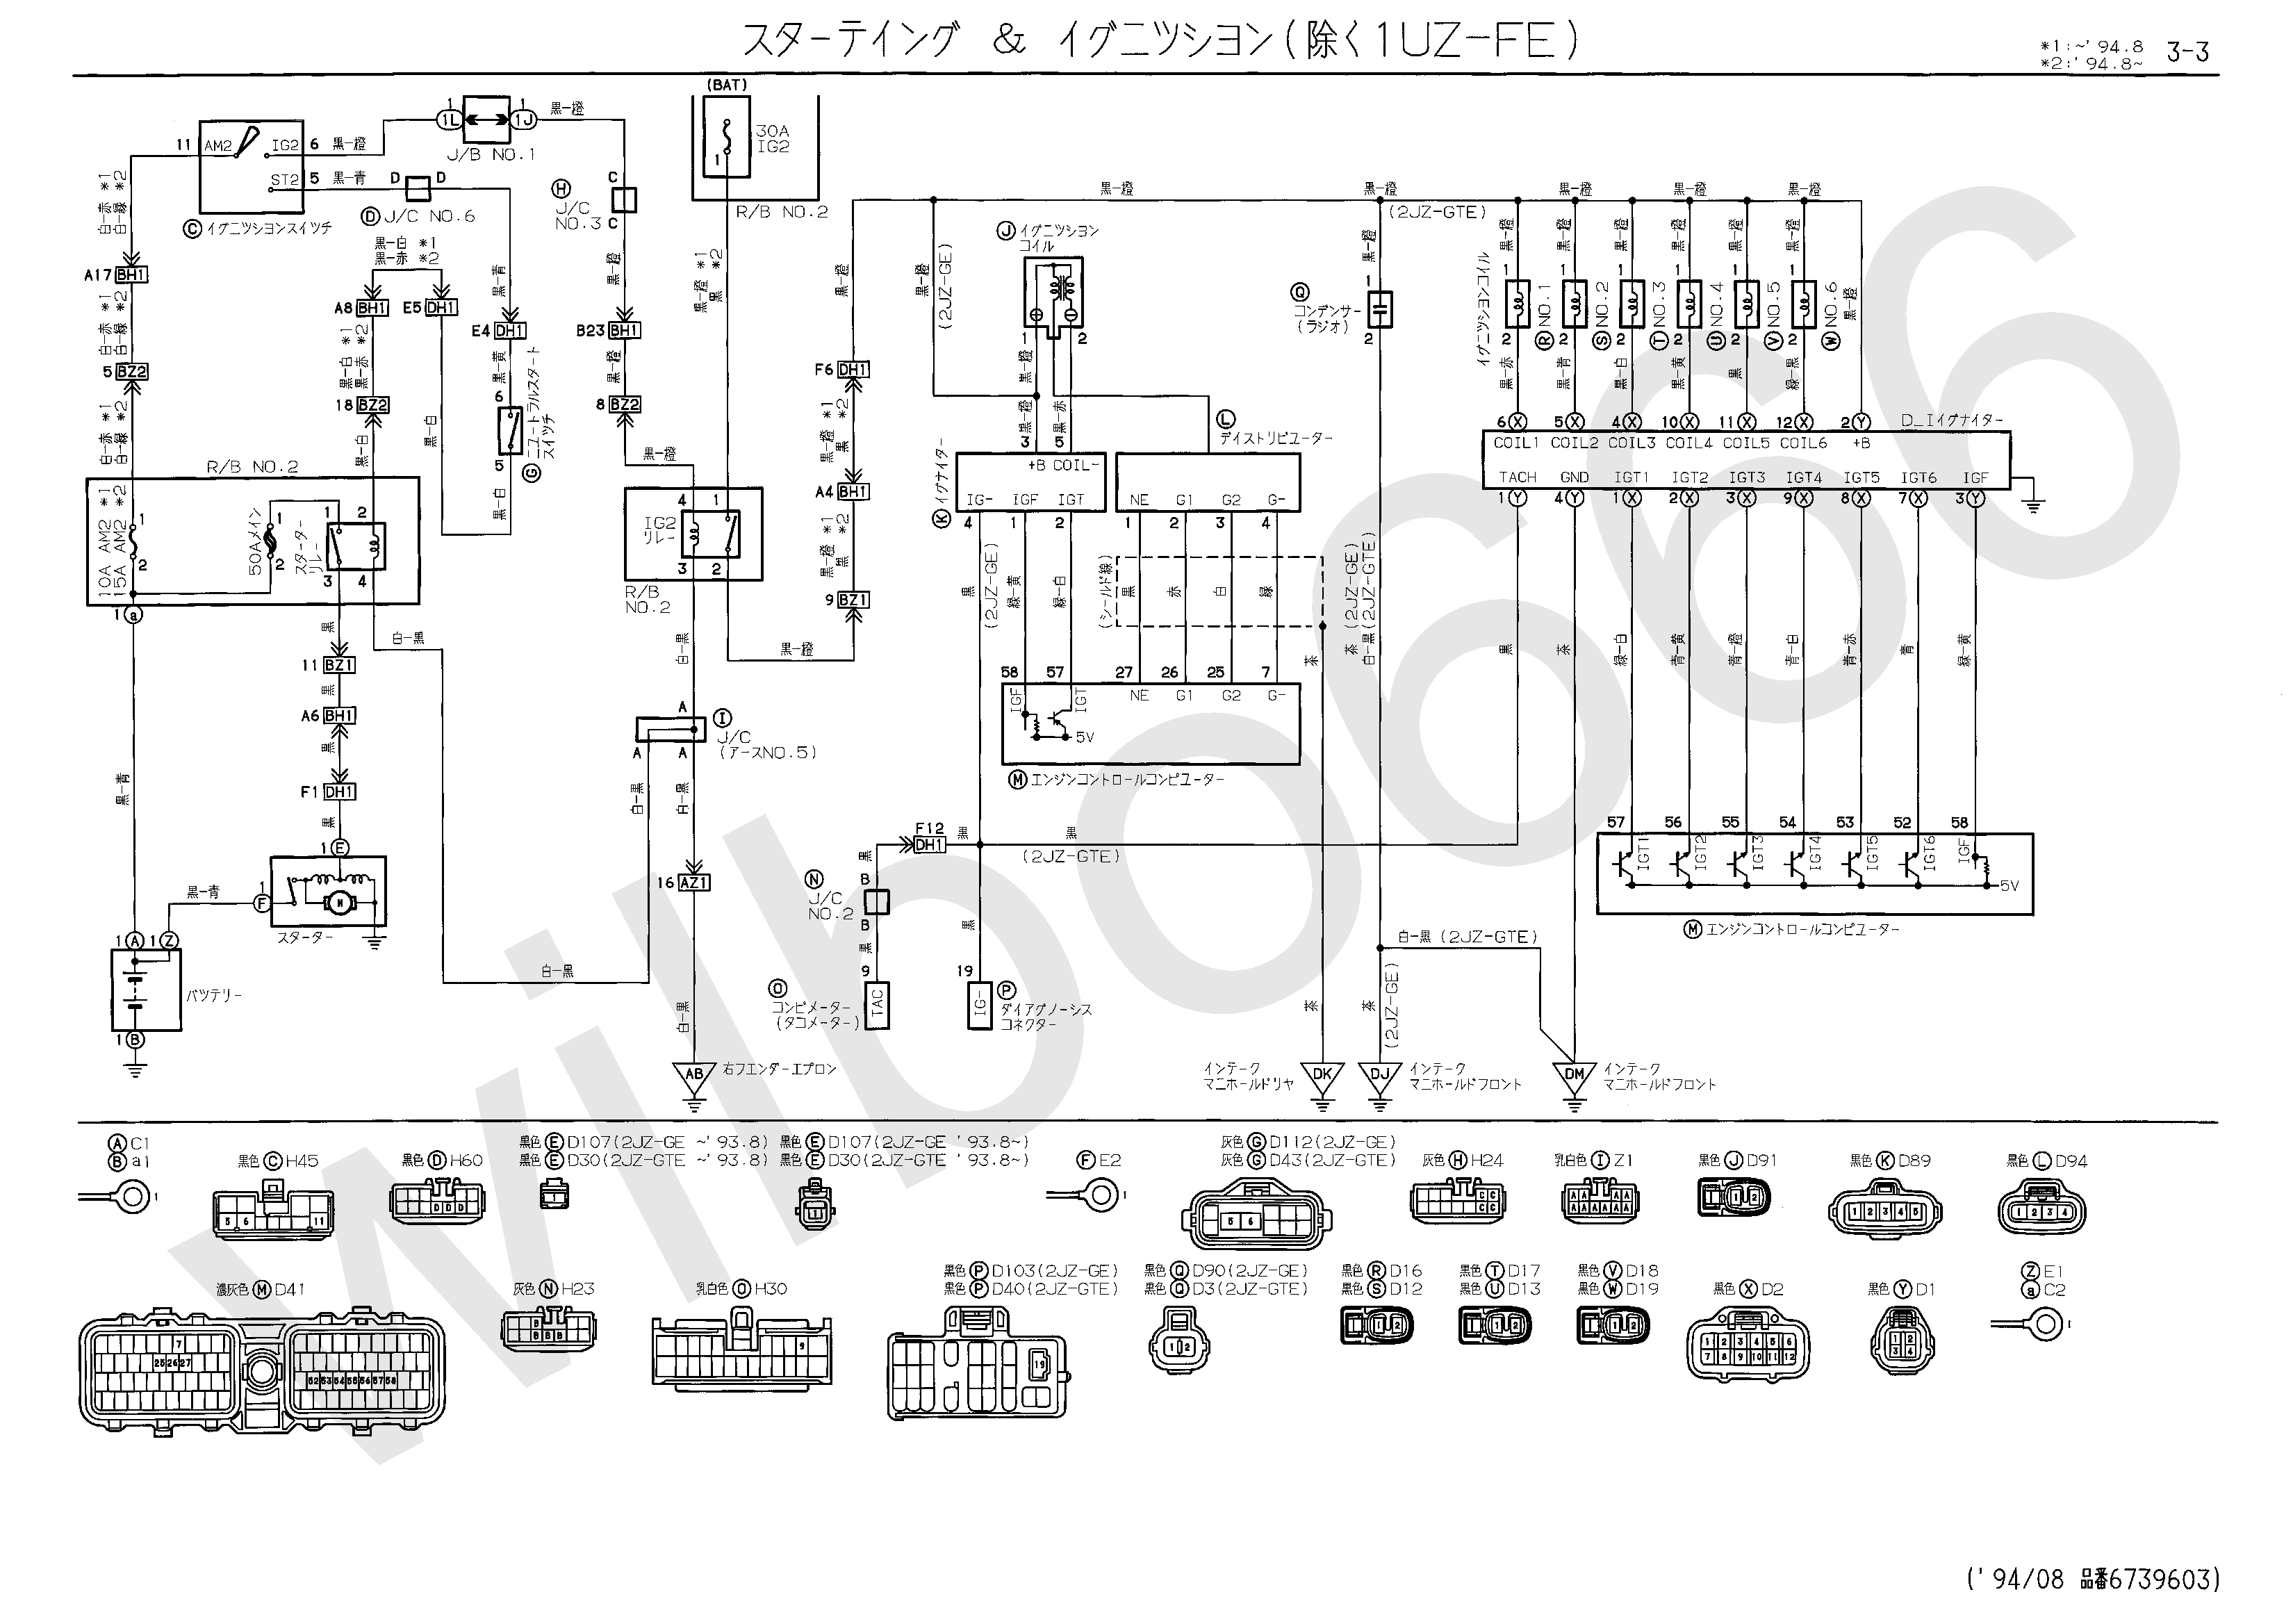 JZS14%23%2C UZS14%23 Electrical Wiring Diagram 6739604 3 3?resize\\\\\\\\\\\\\\\\\\\\\\\\\\\\\\\\\\\\\\\\\\\\\\\\\\\\\\\\\\\\\\\\\\\\\\\\\\\\\\\\\\\\\\\\\\\\\\\\\\\\\\\\\\\\\\\\\=665%2C471 awesome towbar wiring diagram 7 pin photos images for image wire nissan qashqai towbar wiring diagram at cos-gaming.co